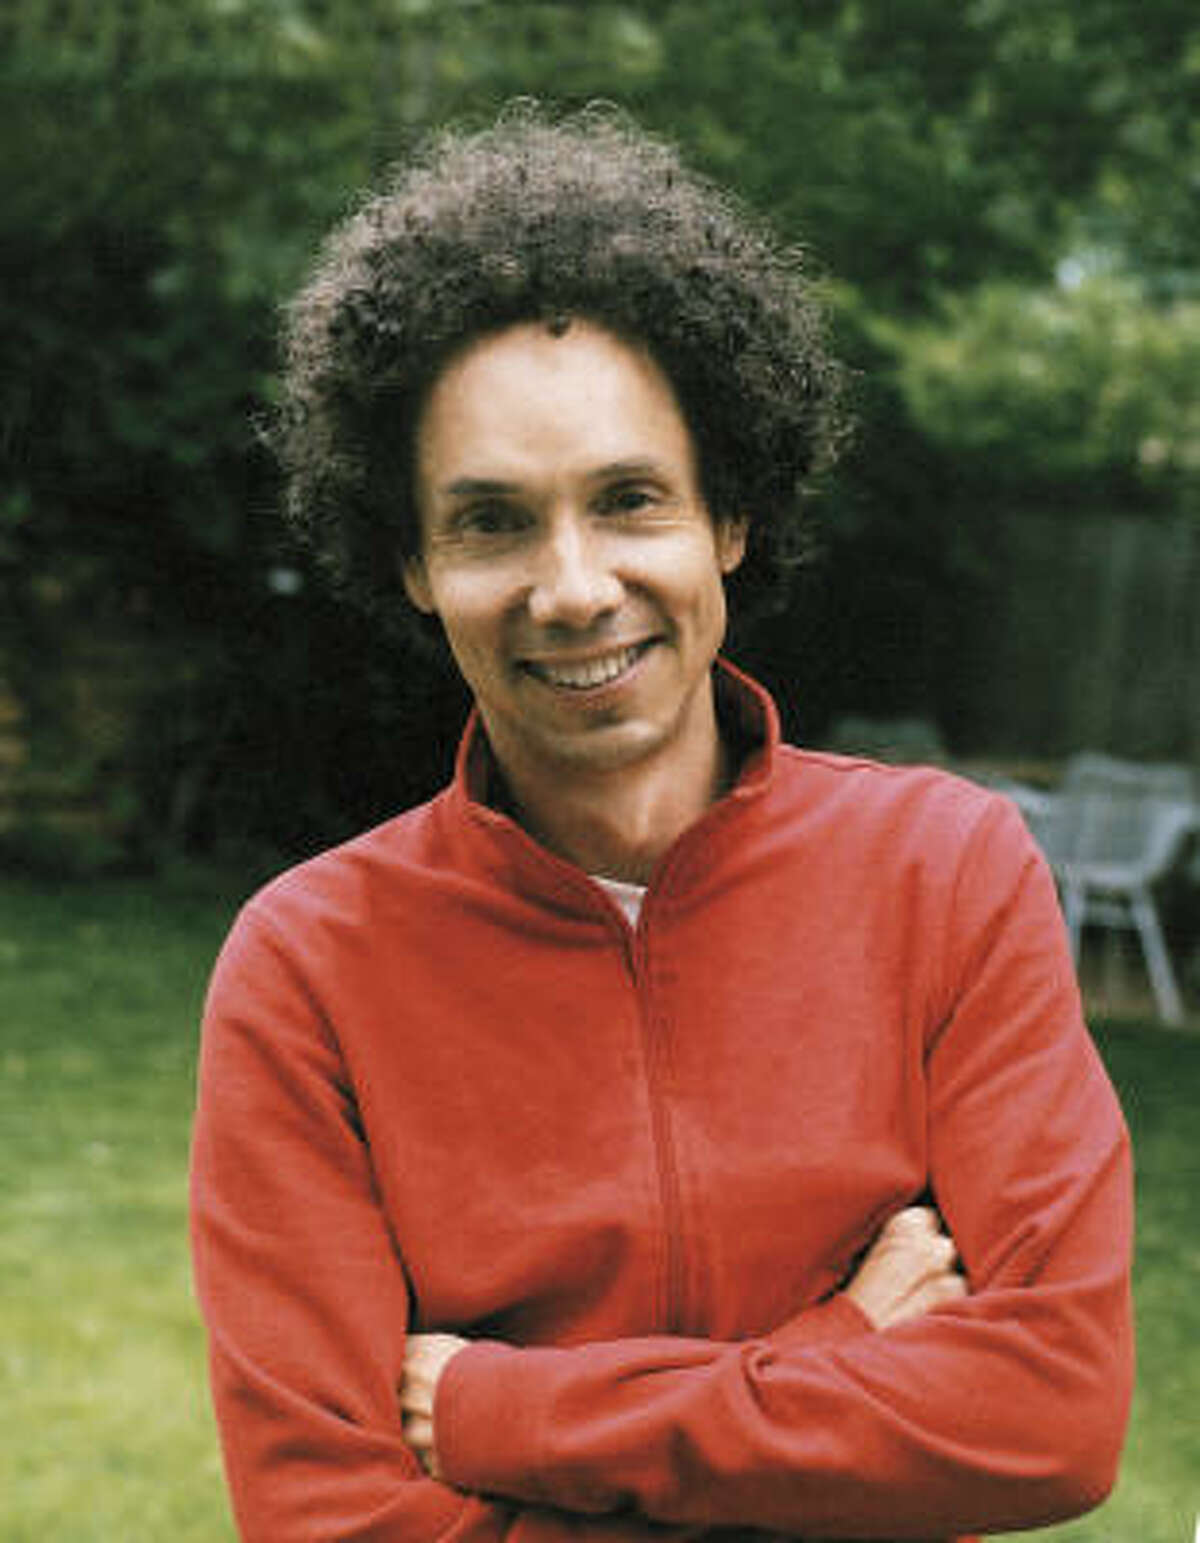 Journalist Malcolm Gladwell, whose books include Outliers: The Story of Success and Blink.